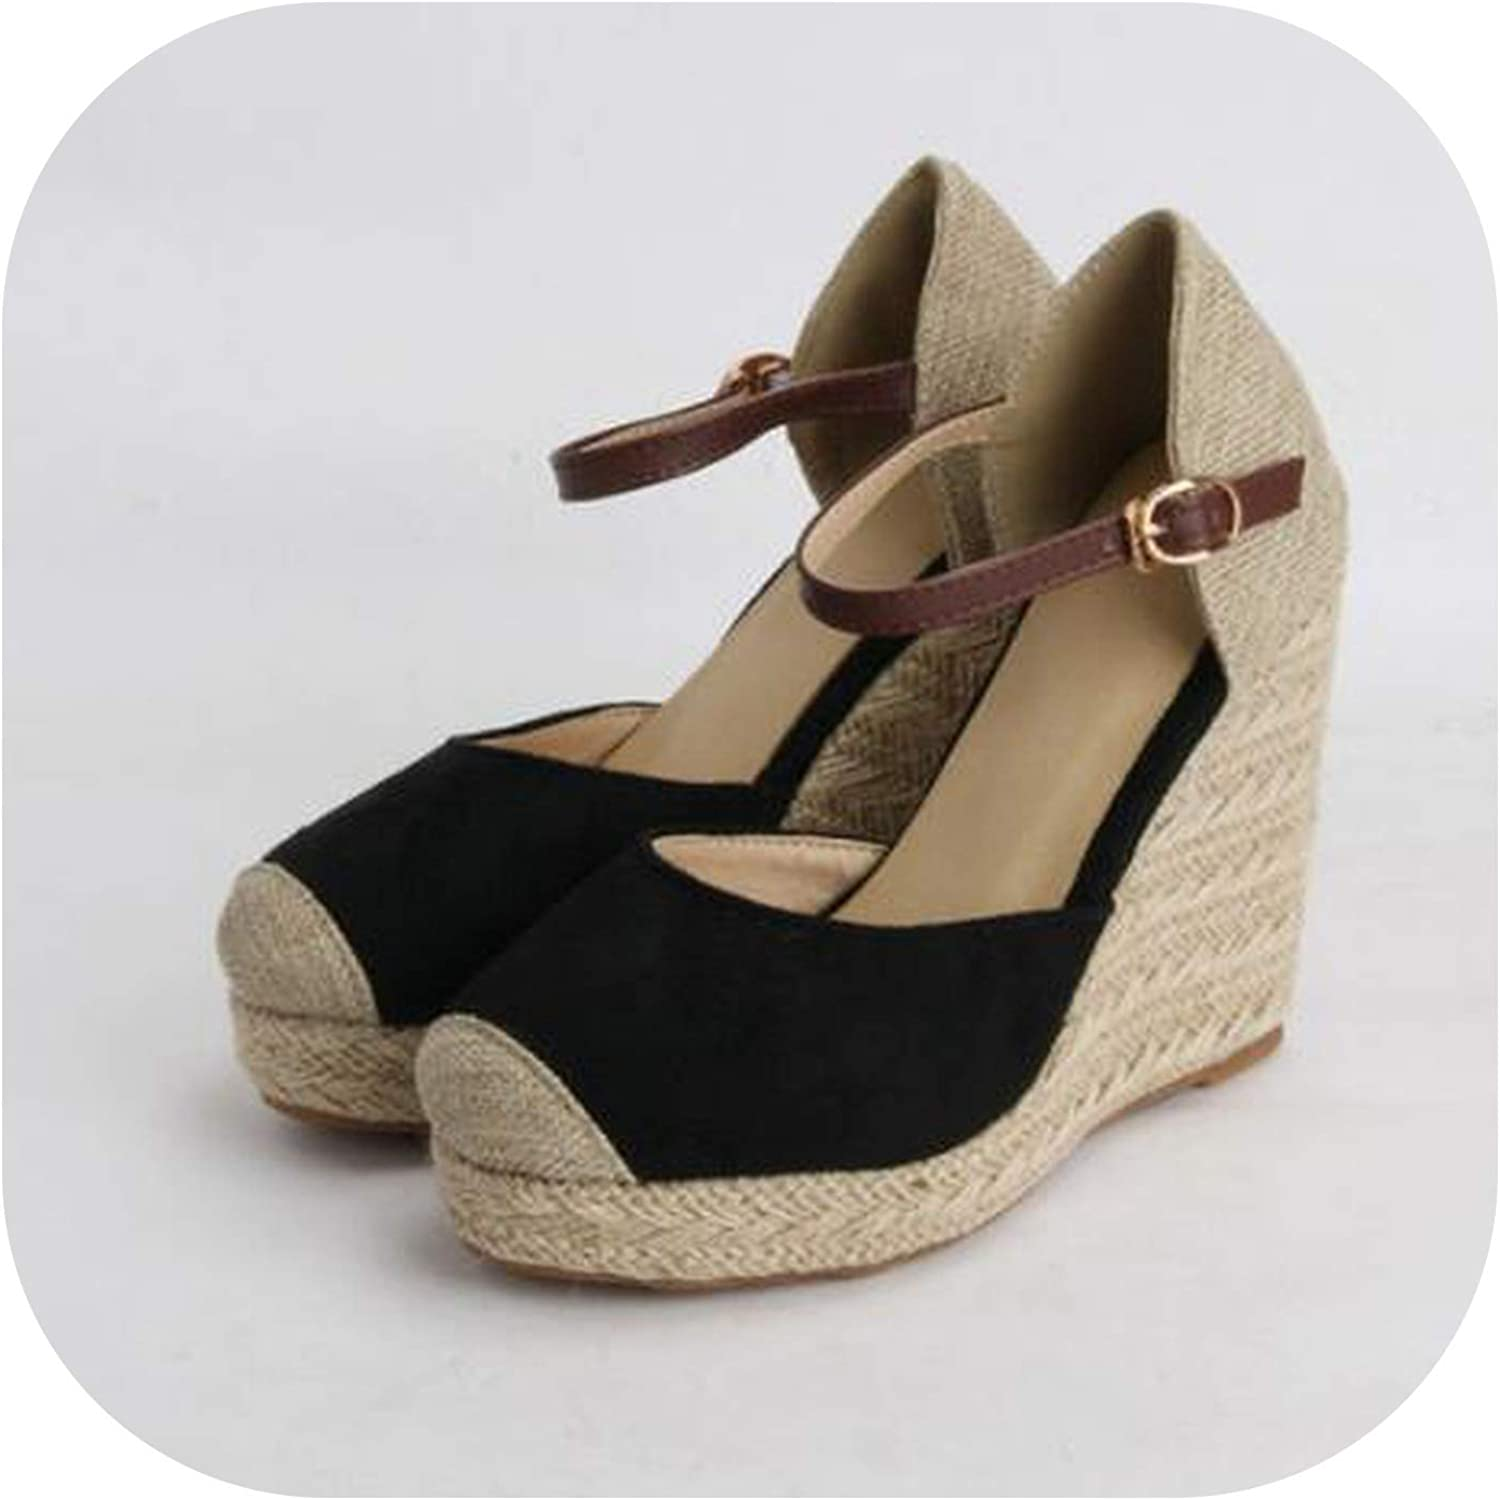 YuJi Women Sandals Summer shoes Platform Wedges Heel Ankle Strap Bohemia Espadrille Sandals,Black,9.5